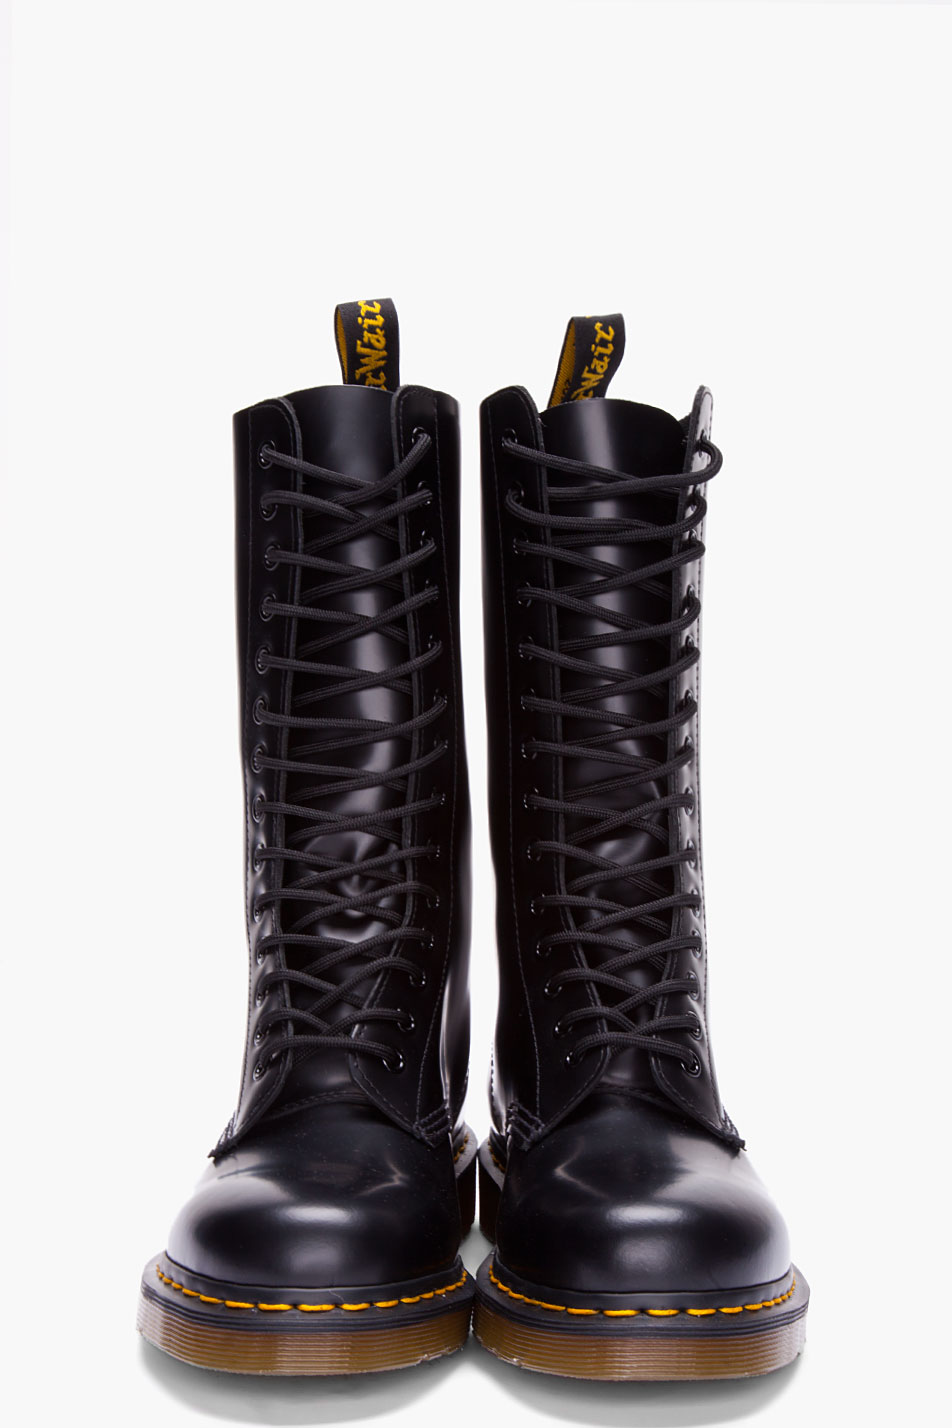 Dr Martens Tall Black Leather Lace Up Boots In Black For